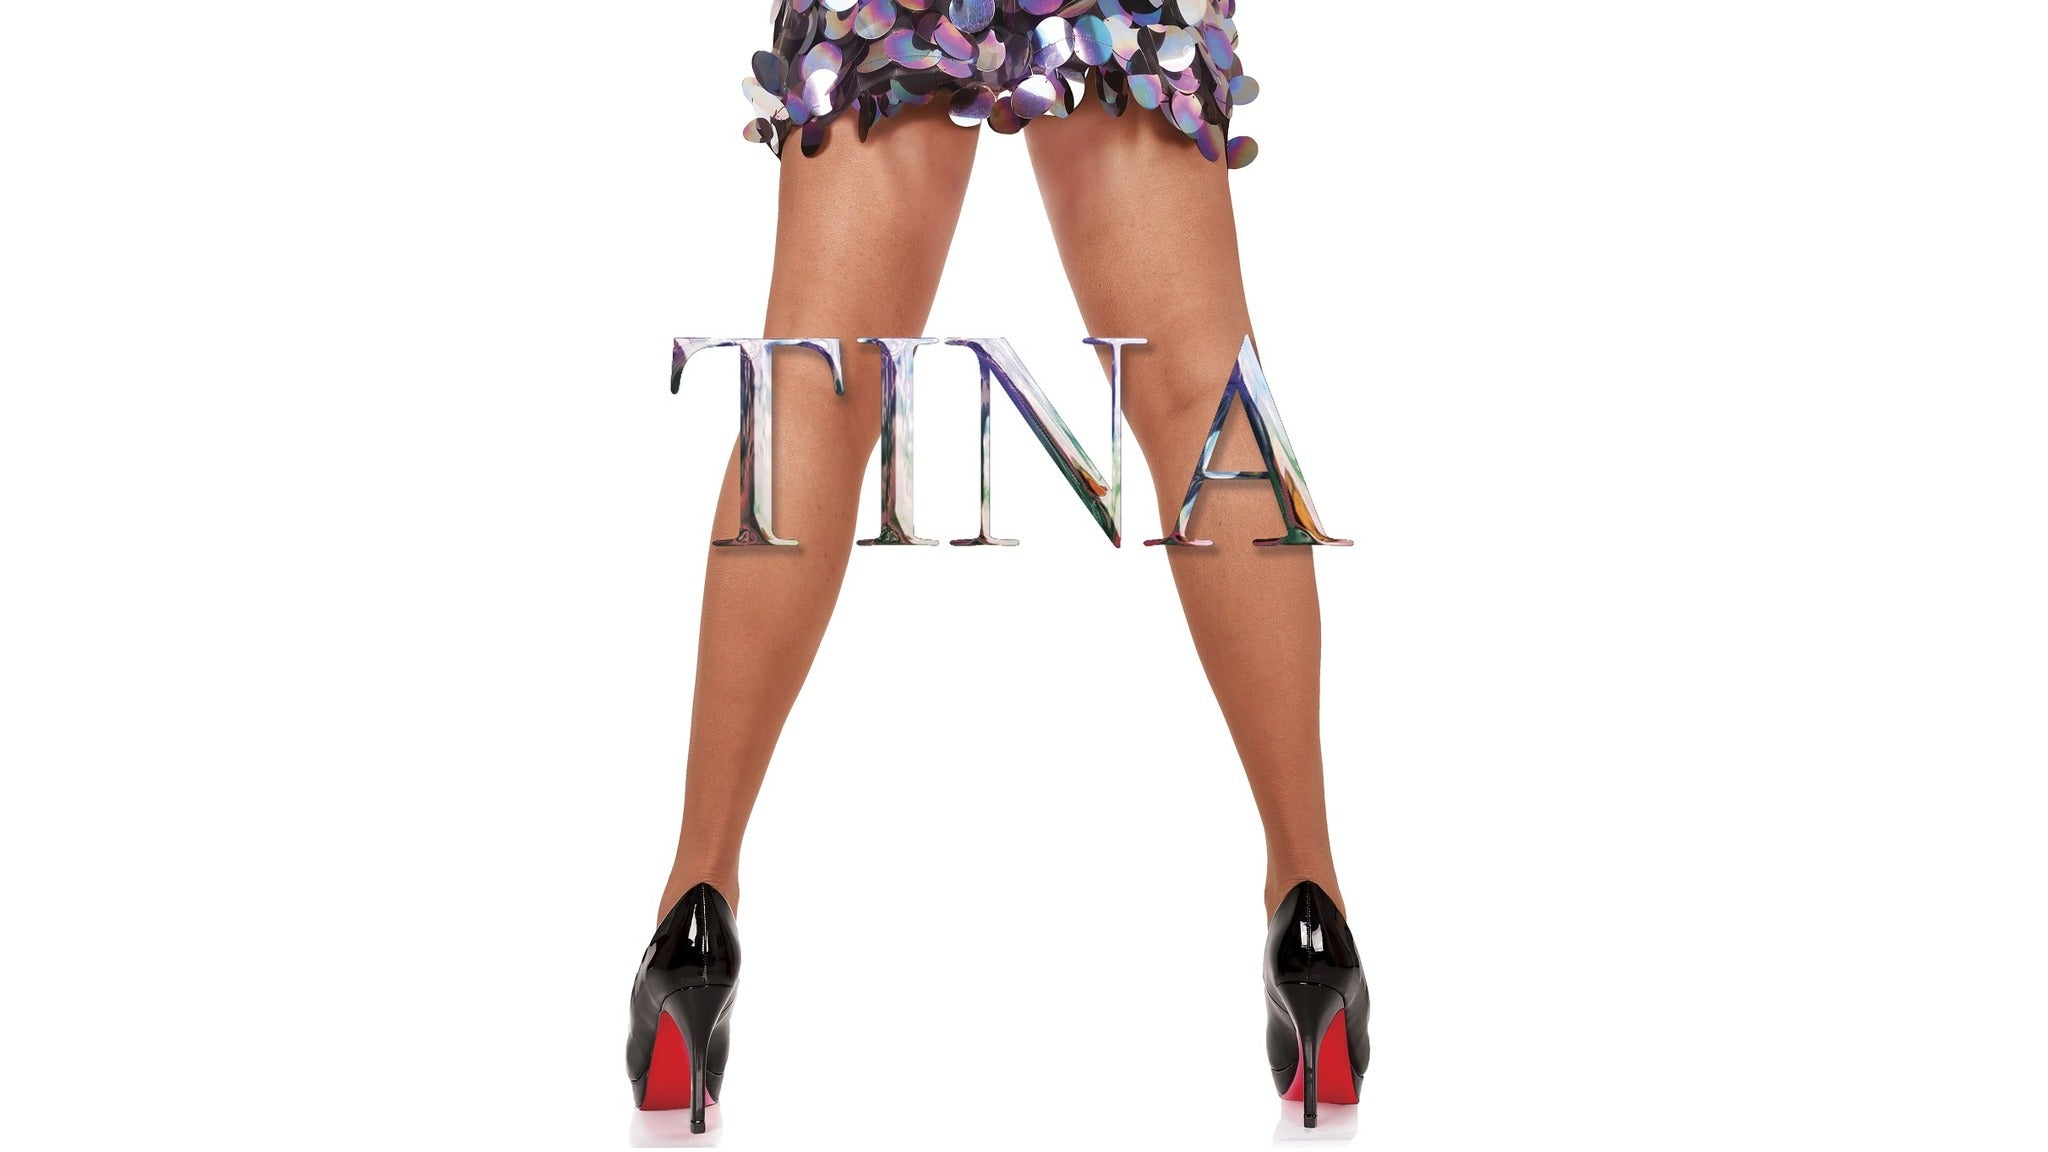 Simply the Best – A Tribute to the Music of Tina Turner